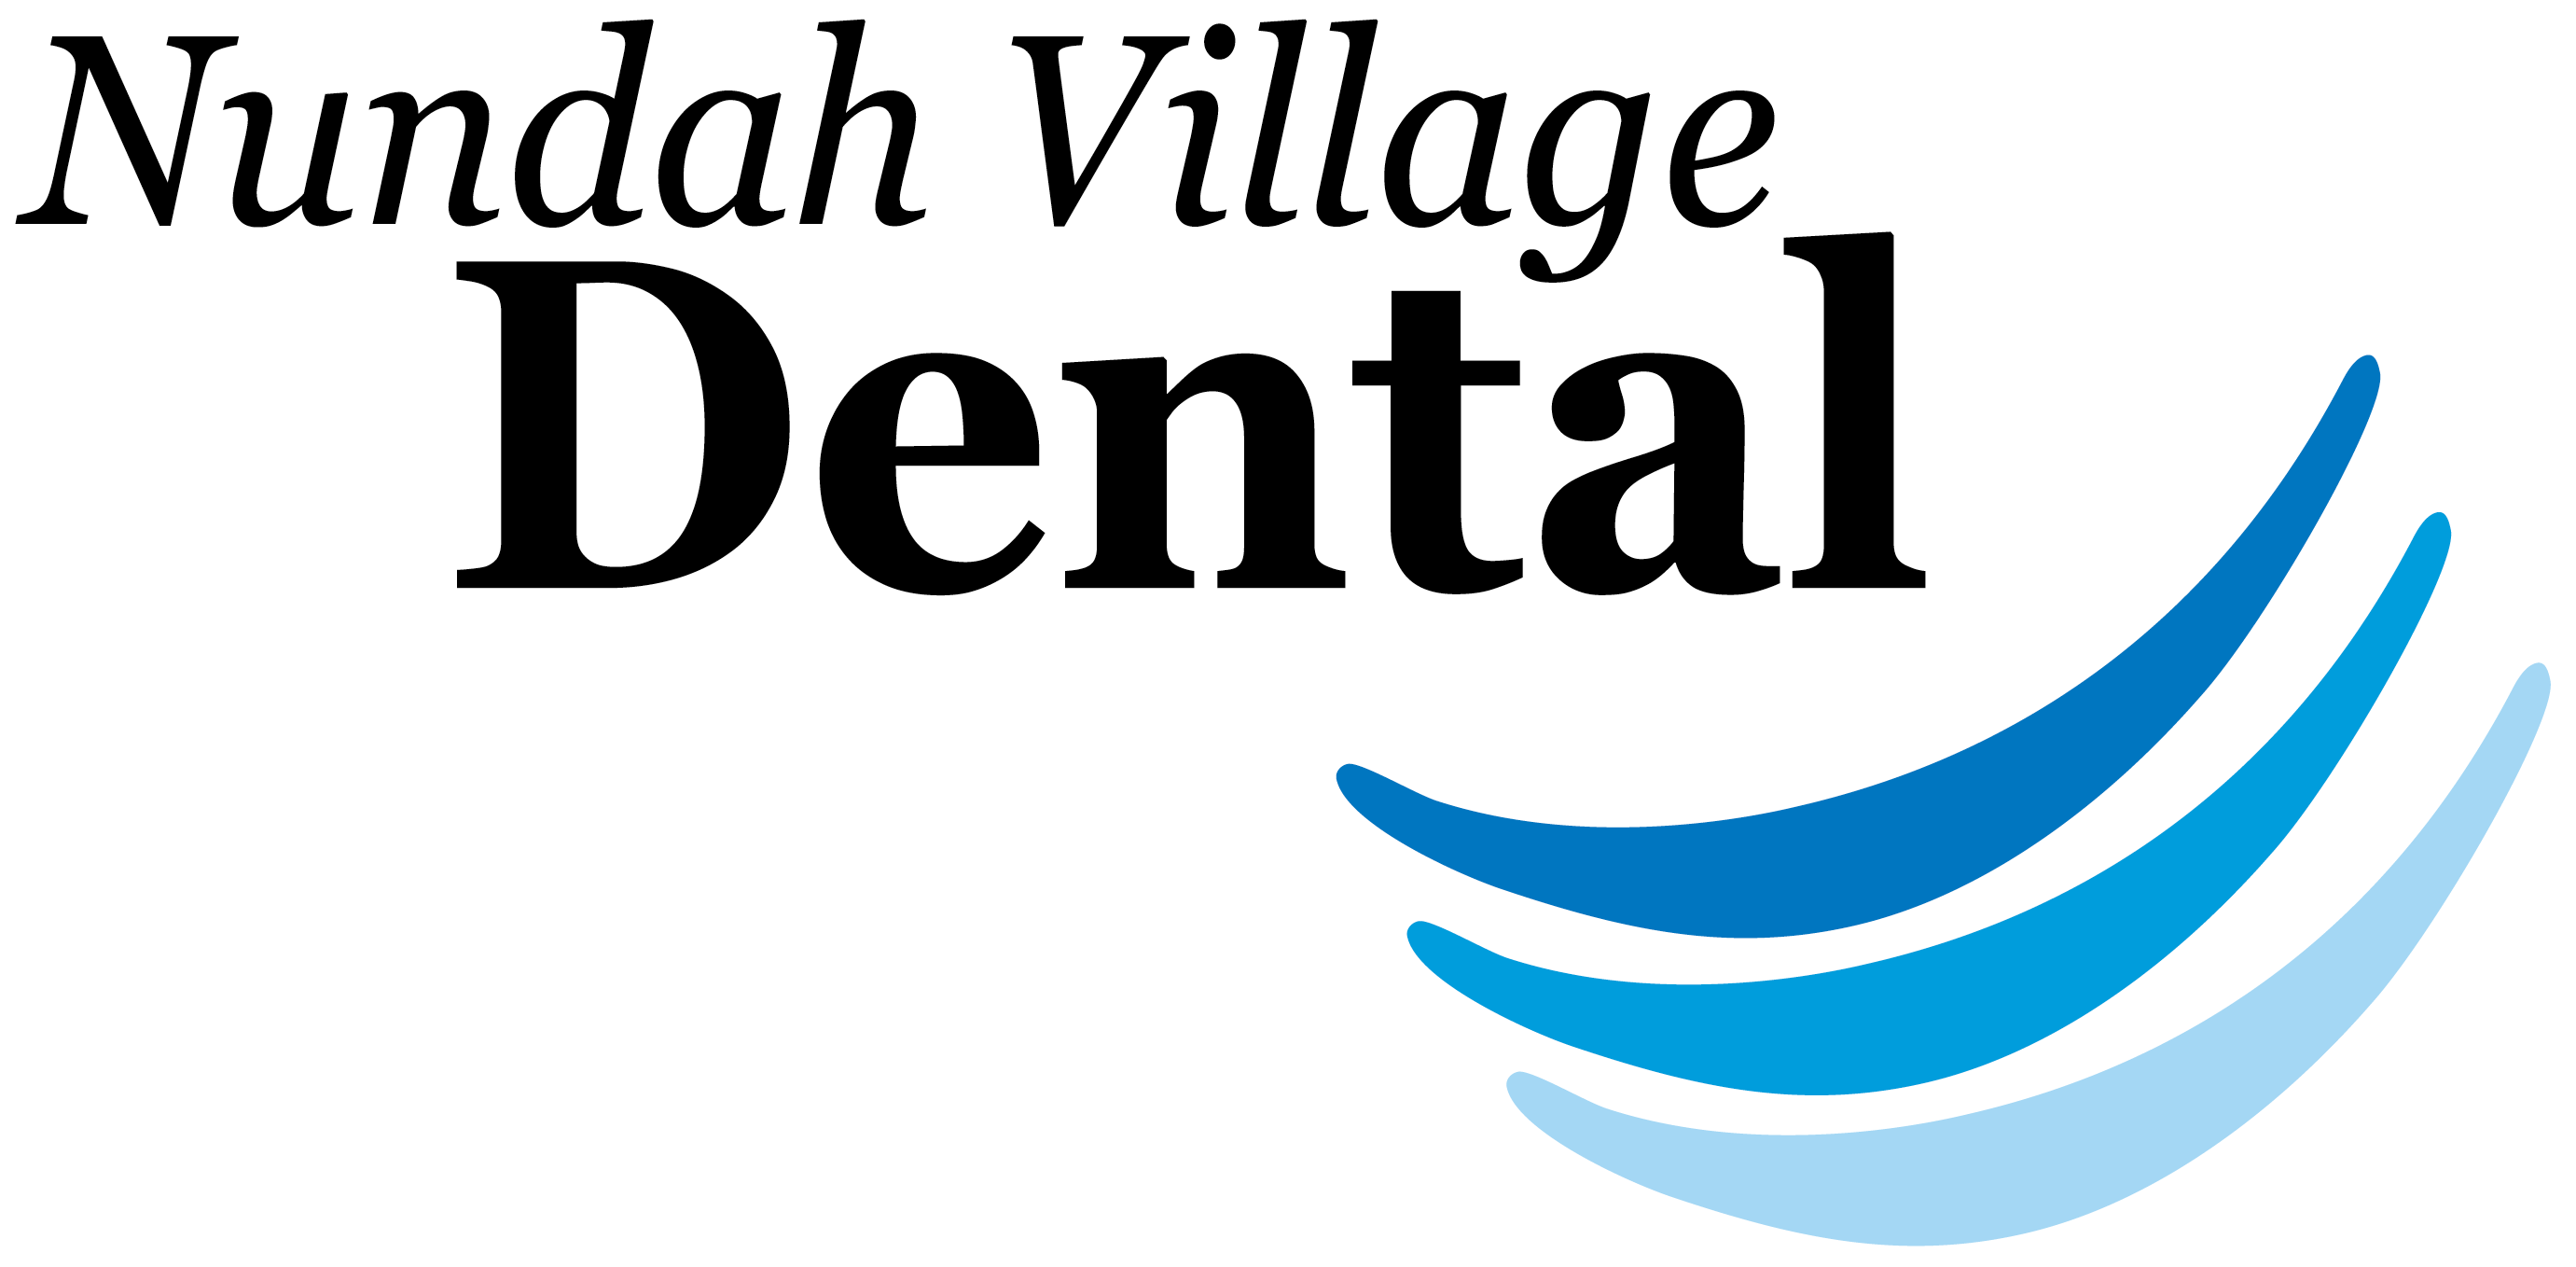 Nundah Village Dental Logo